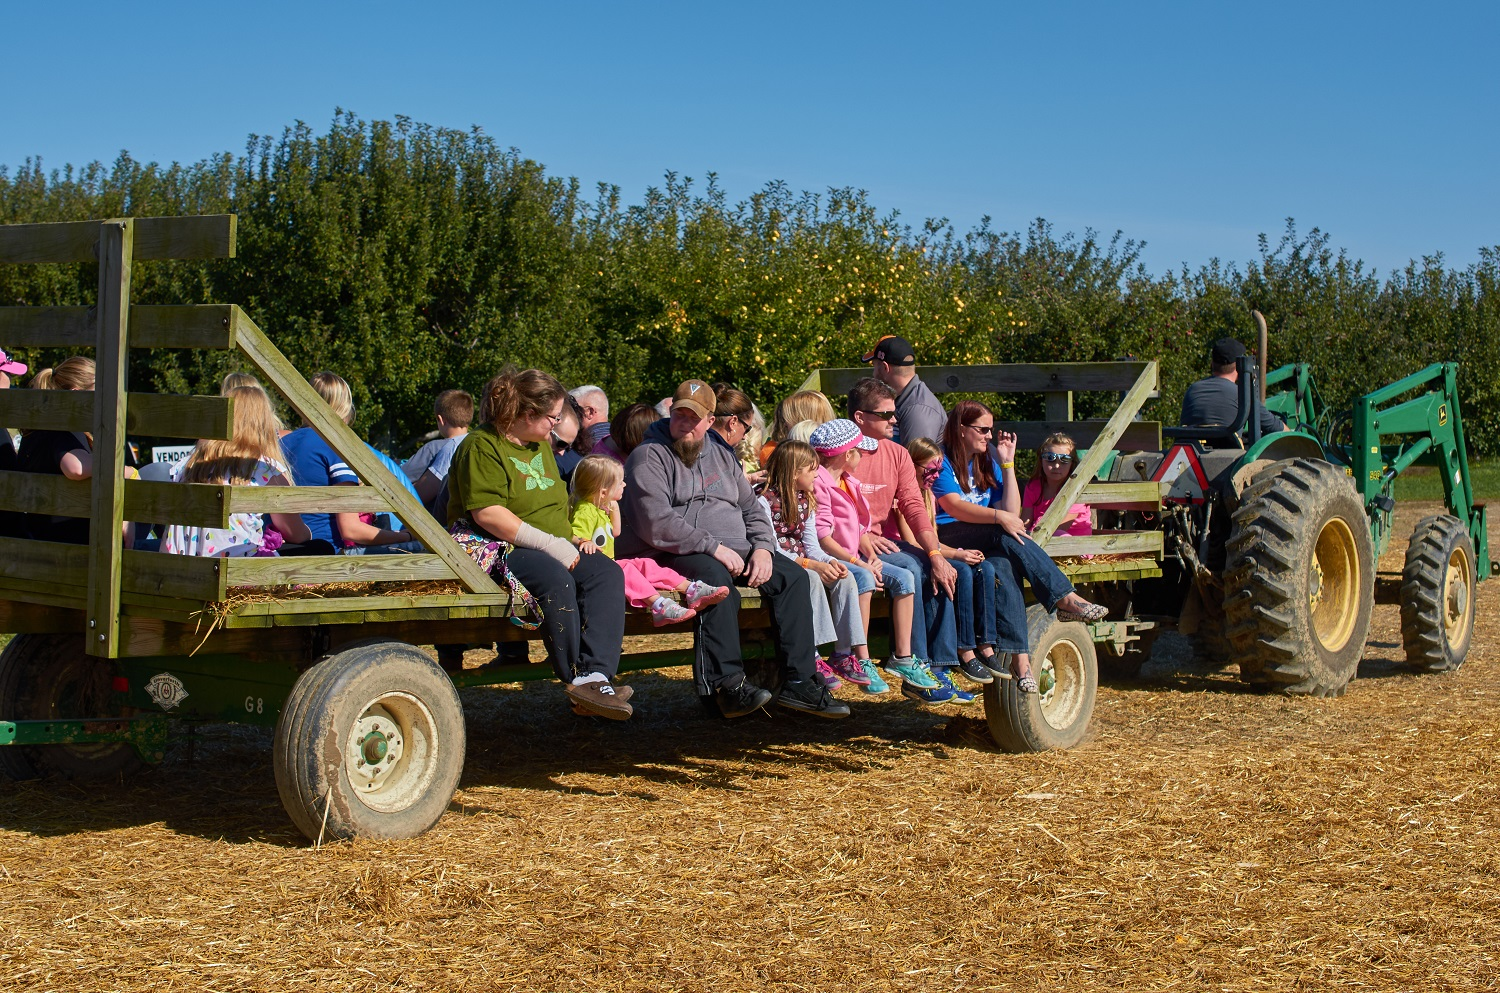 Hayride at Beasley's Orchard Heartland Apple Festival in Danville, Indiana